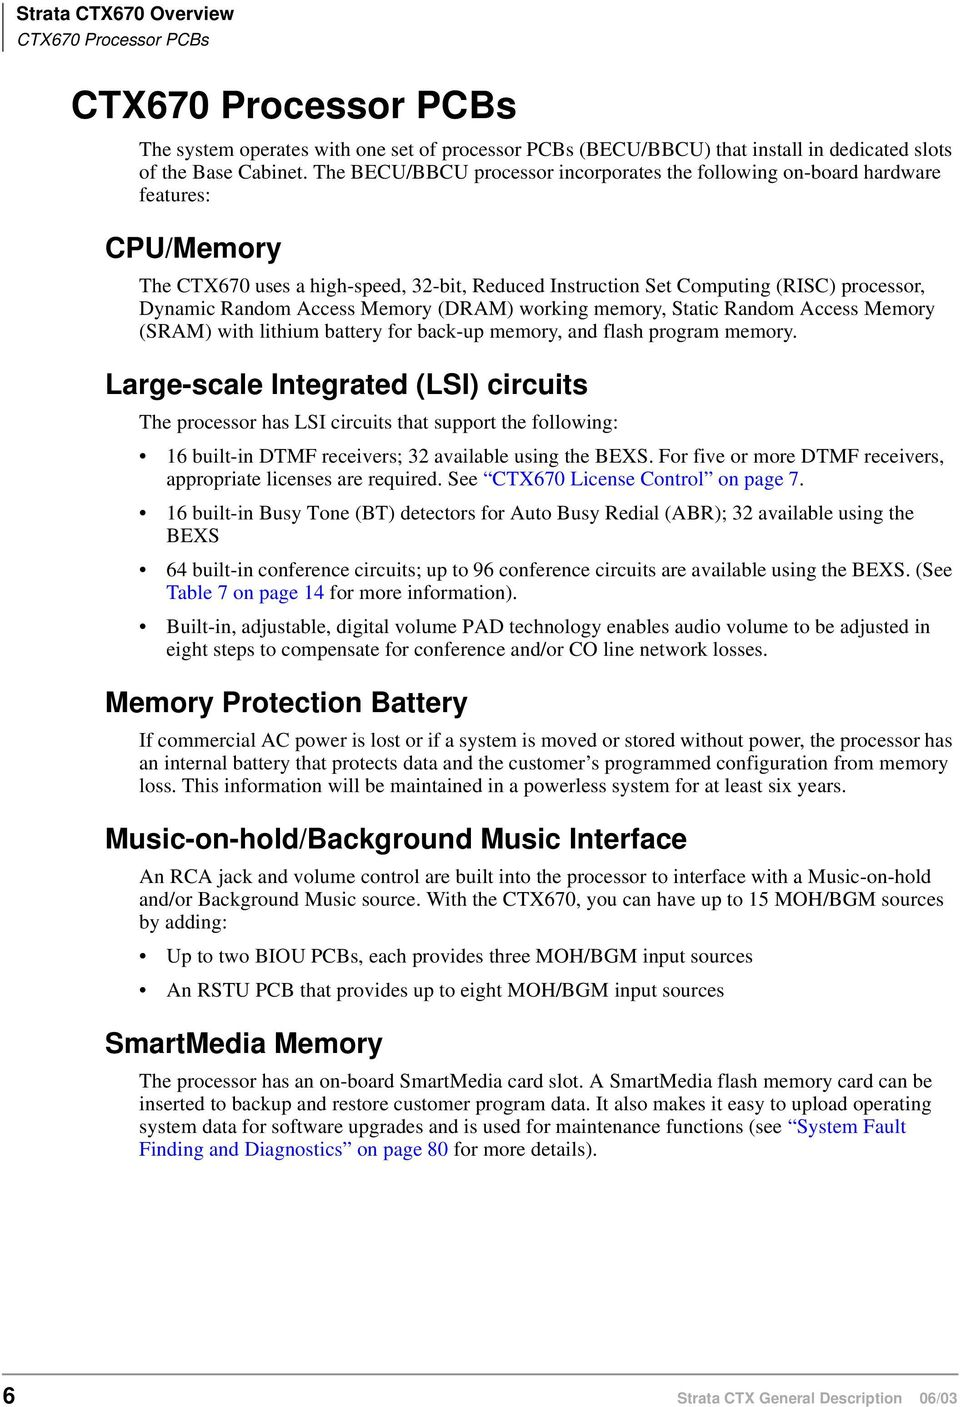 Access Memory (DRAM) working memory, Static Random Access Memory (SRAM) with lithium battery for back-up memory, and flash program memory.